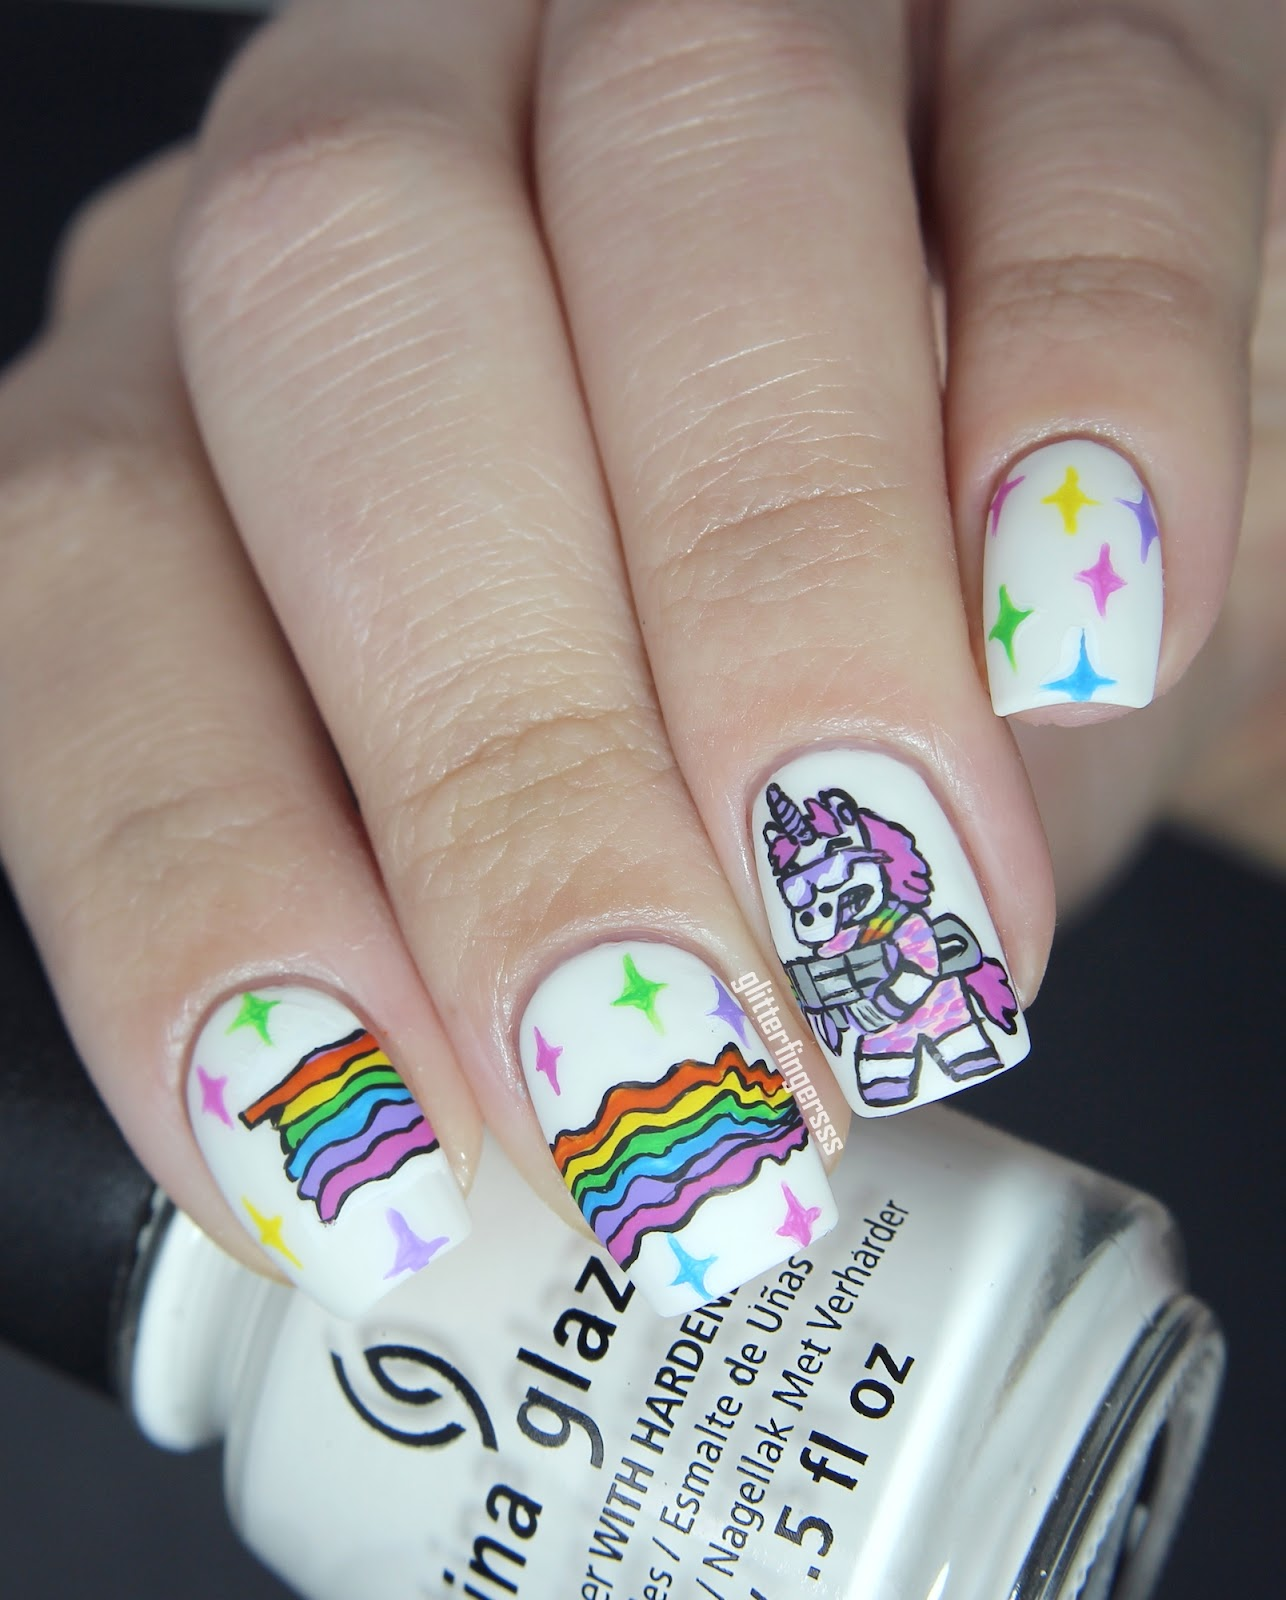 On Shutterstock And I Know That Have To Paint It My Nails So If Youve Ever Wondered How Rainbows Are MadeI A Tip For You D